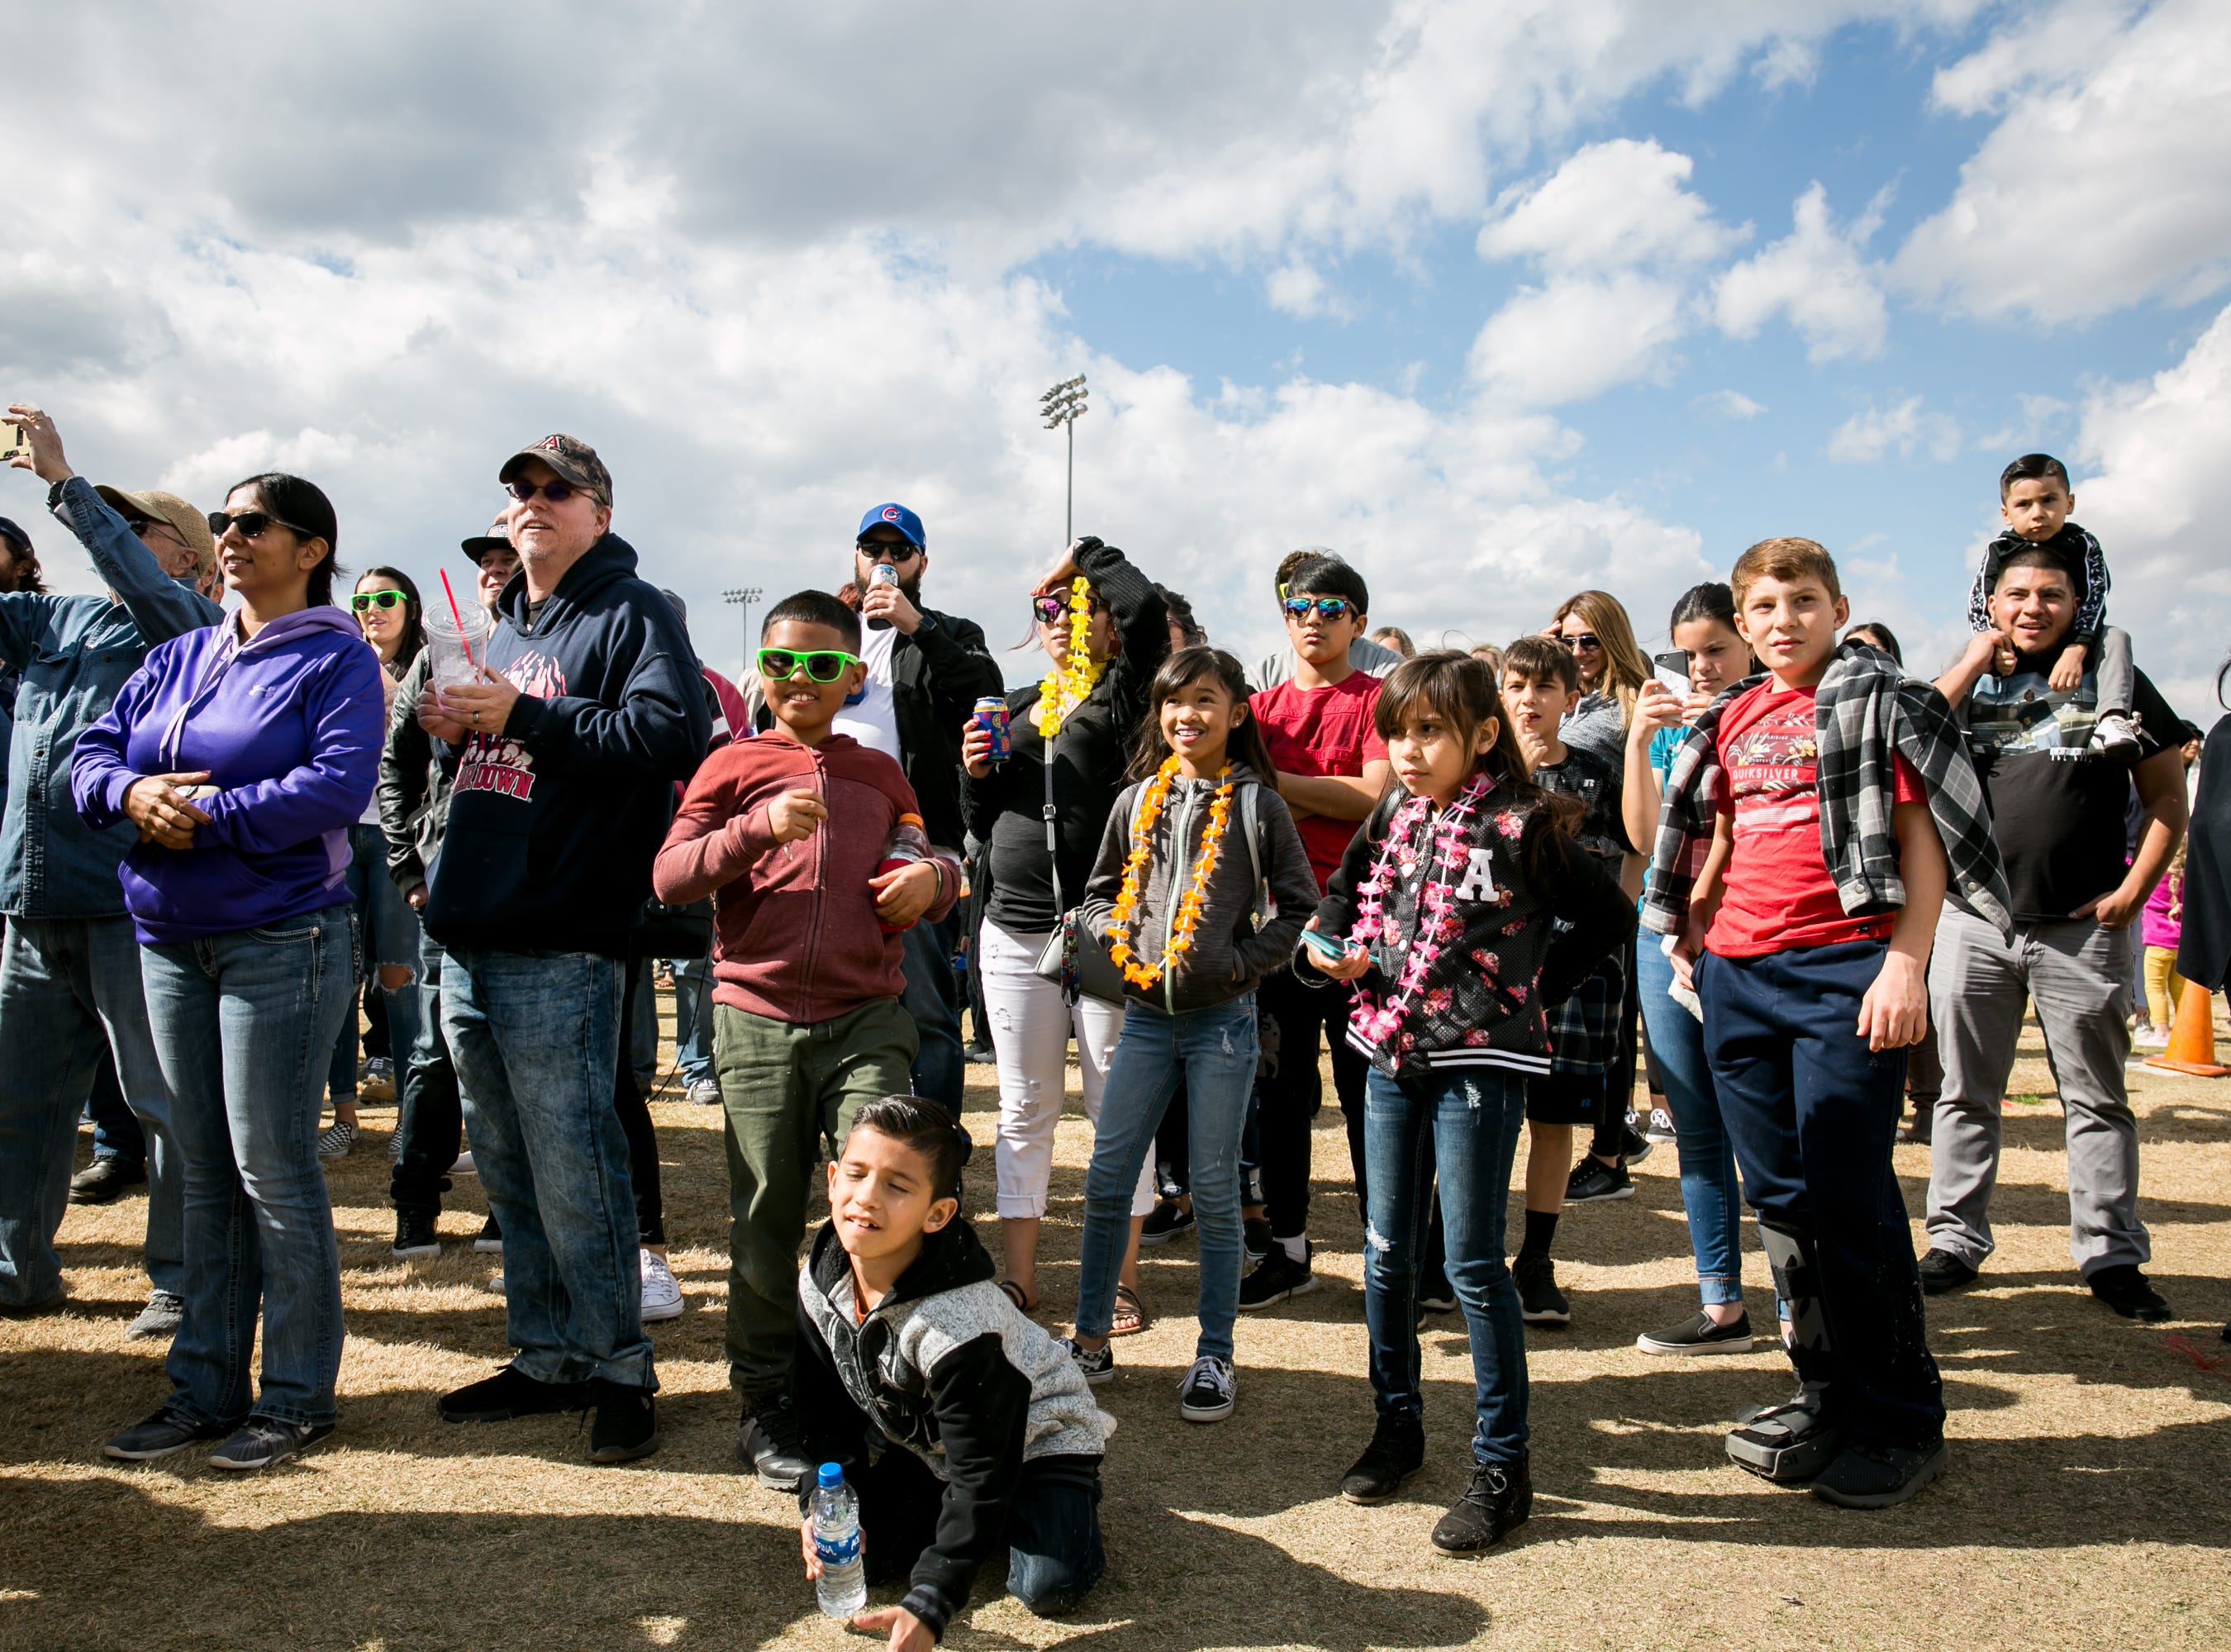 The crowd watches the eating contest during the Street Eats Food Truck Festival at Salt River Fields near Scottsdale on Feb. 17, 2019.